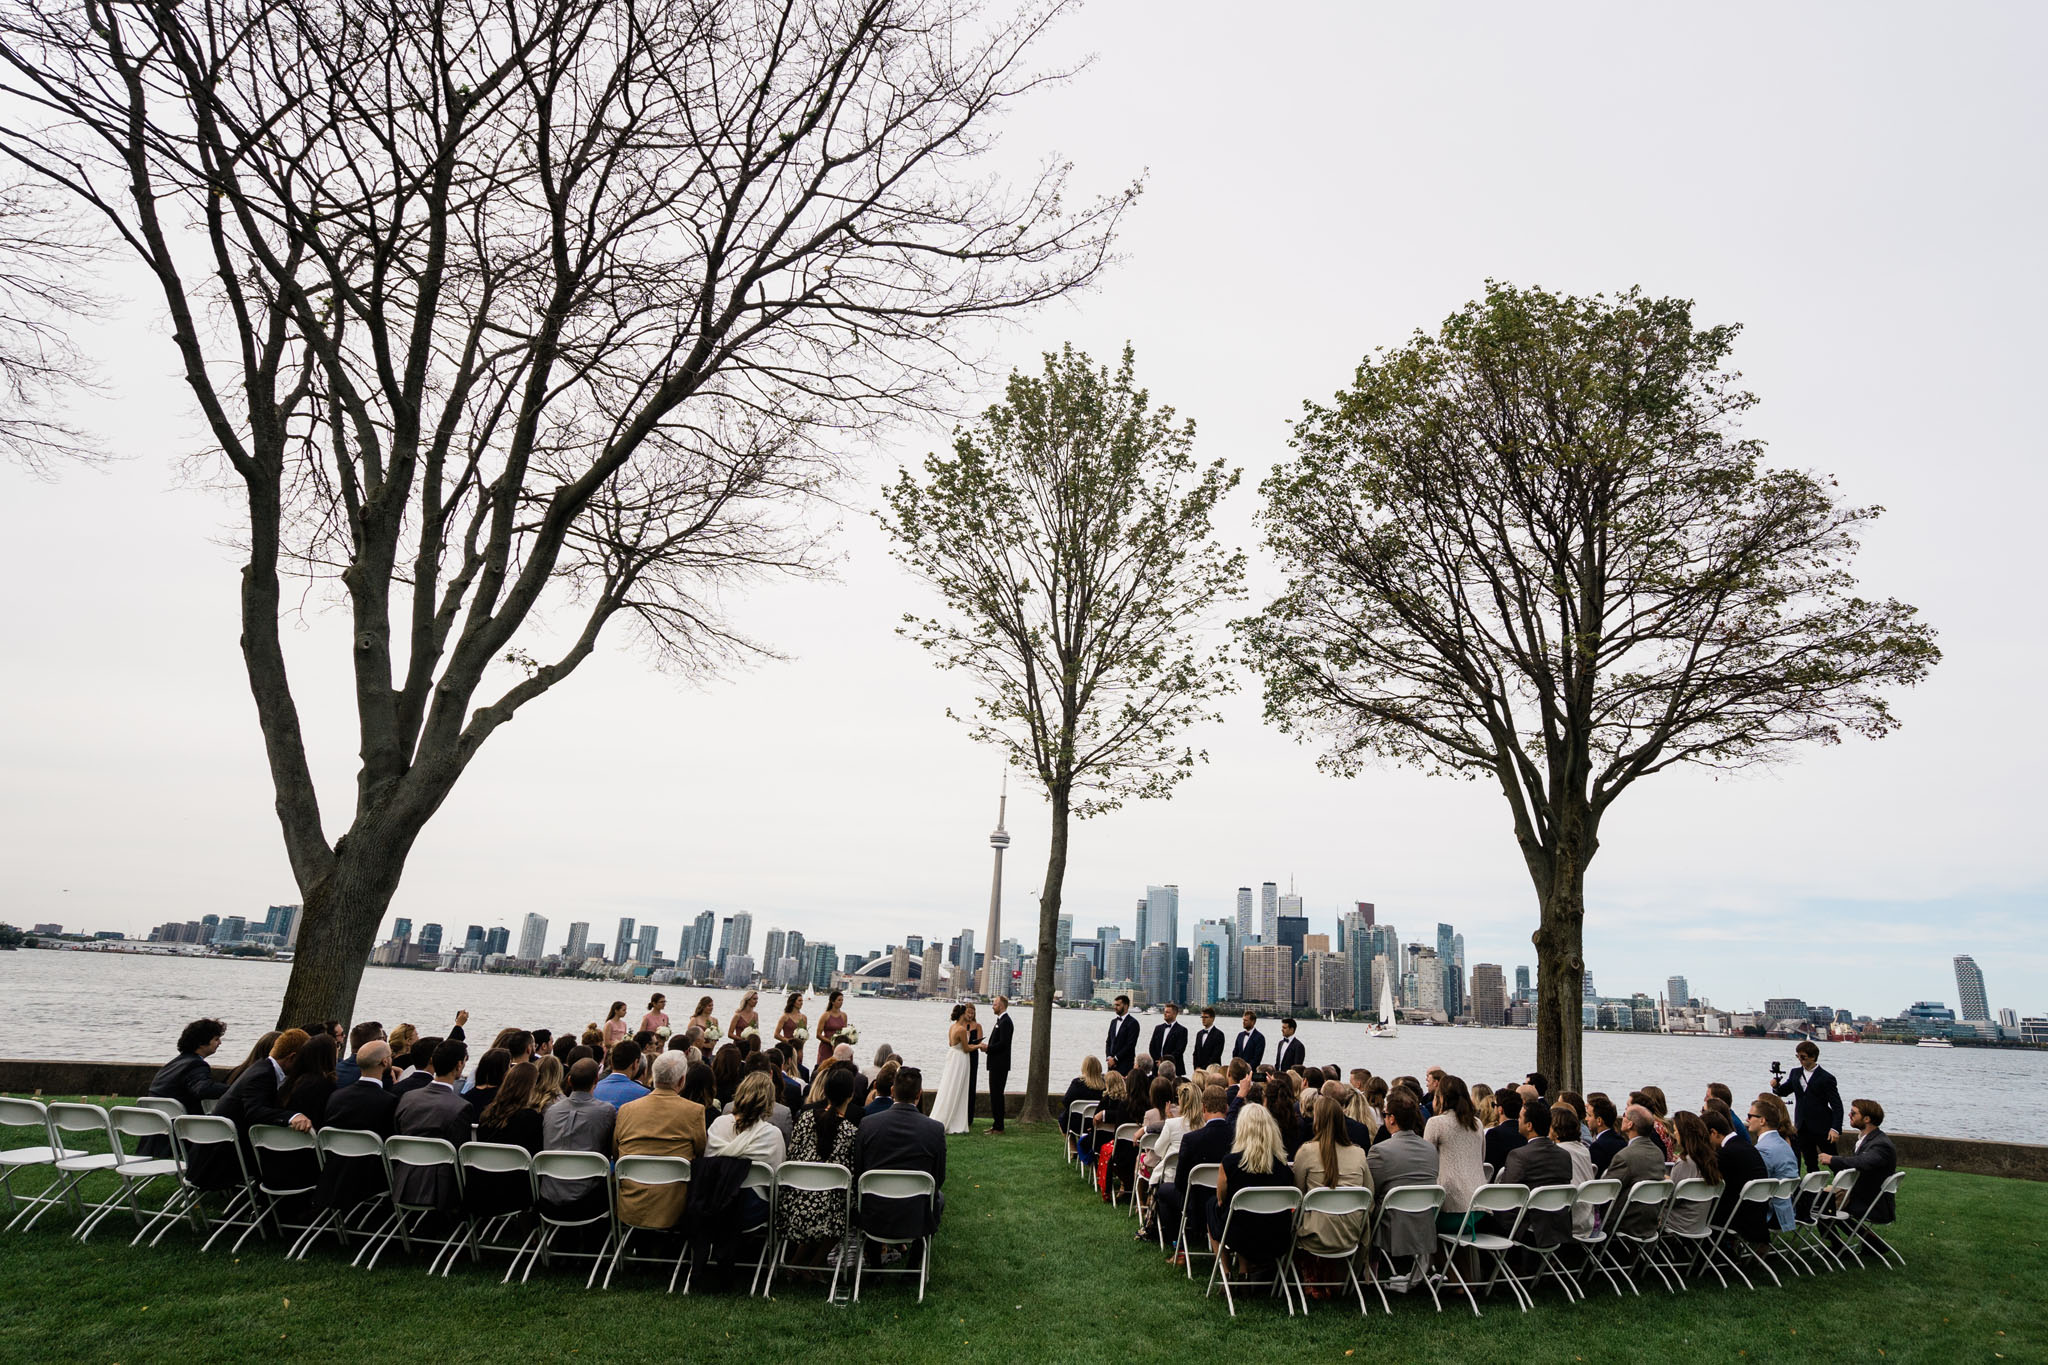 City skyline in the background. Couple getting married.